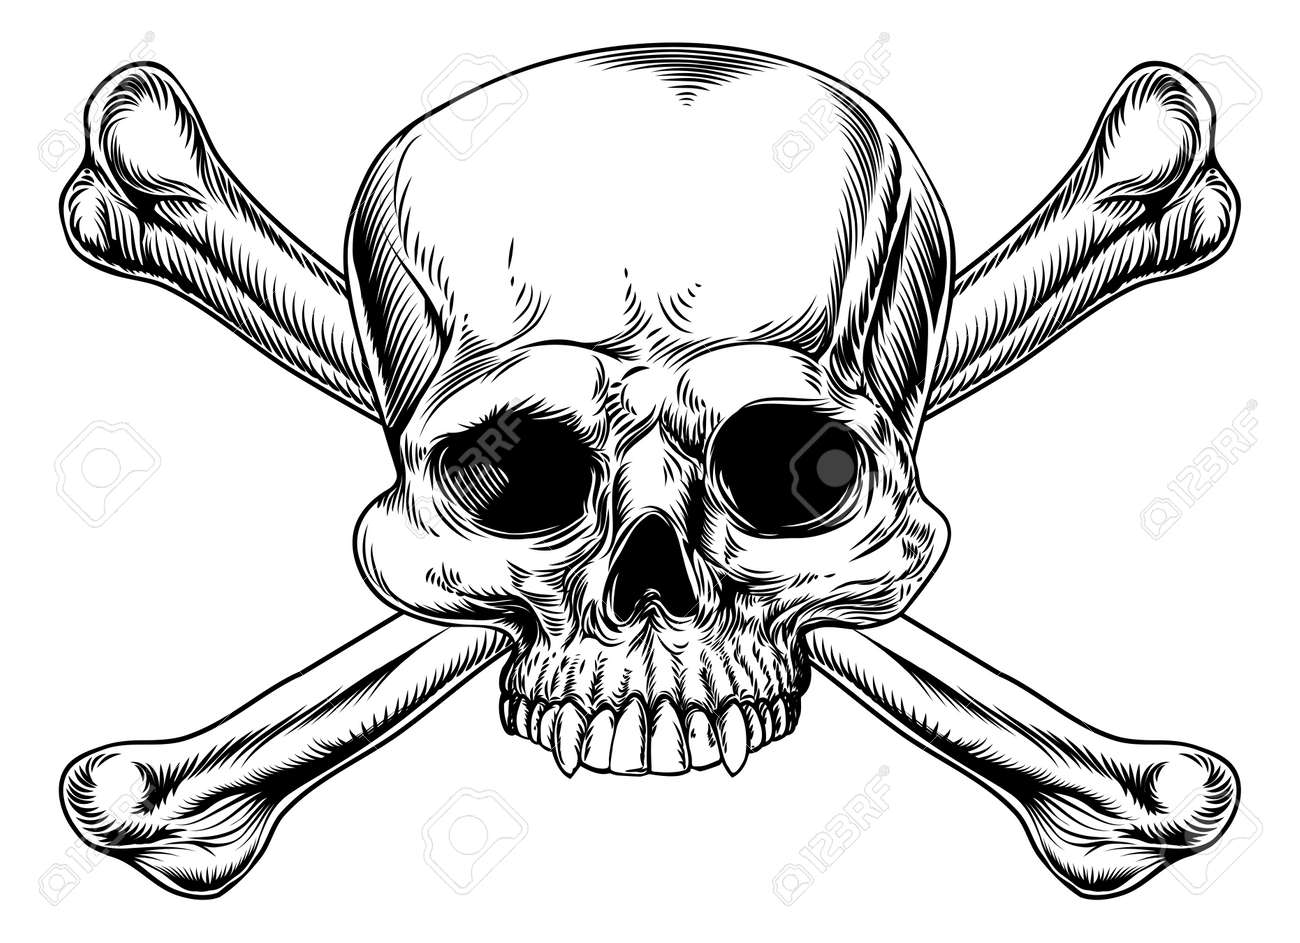 17 809 pirate skull cliparts stock vector and royalty free pirate